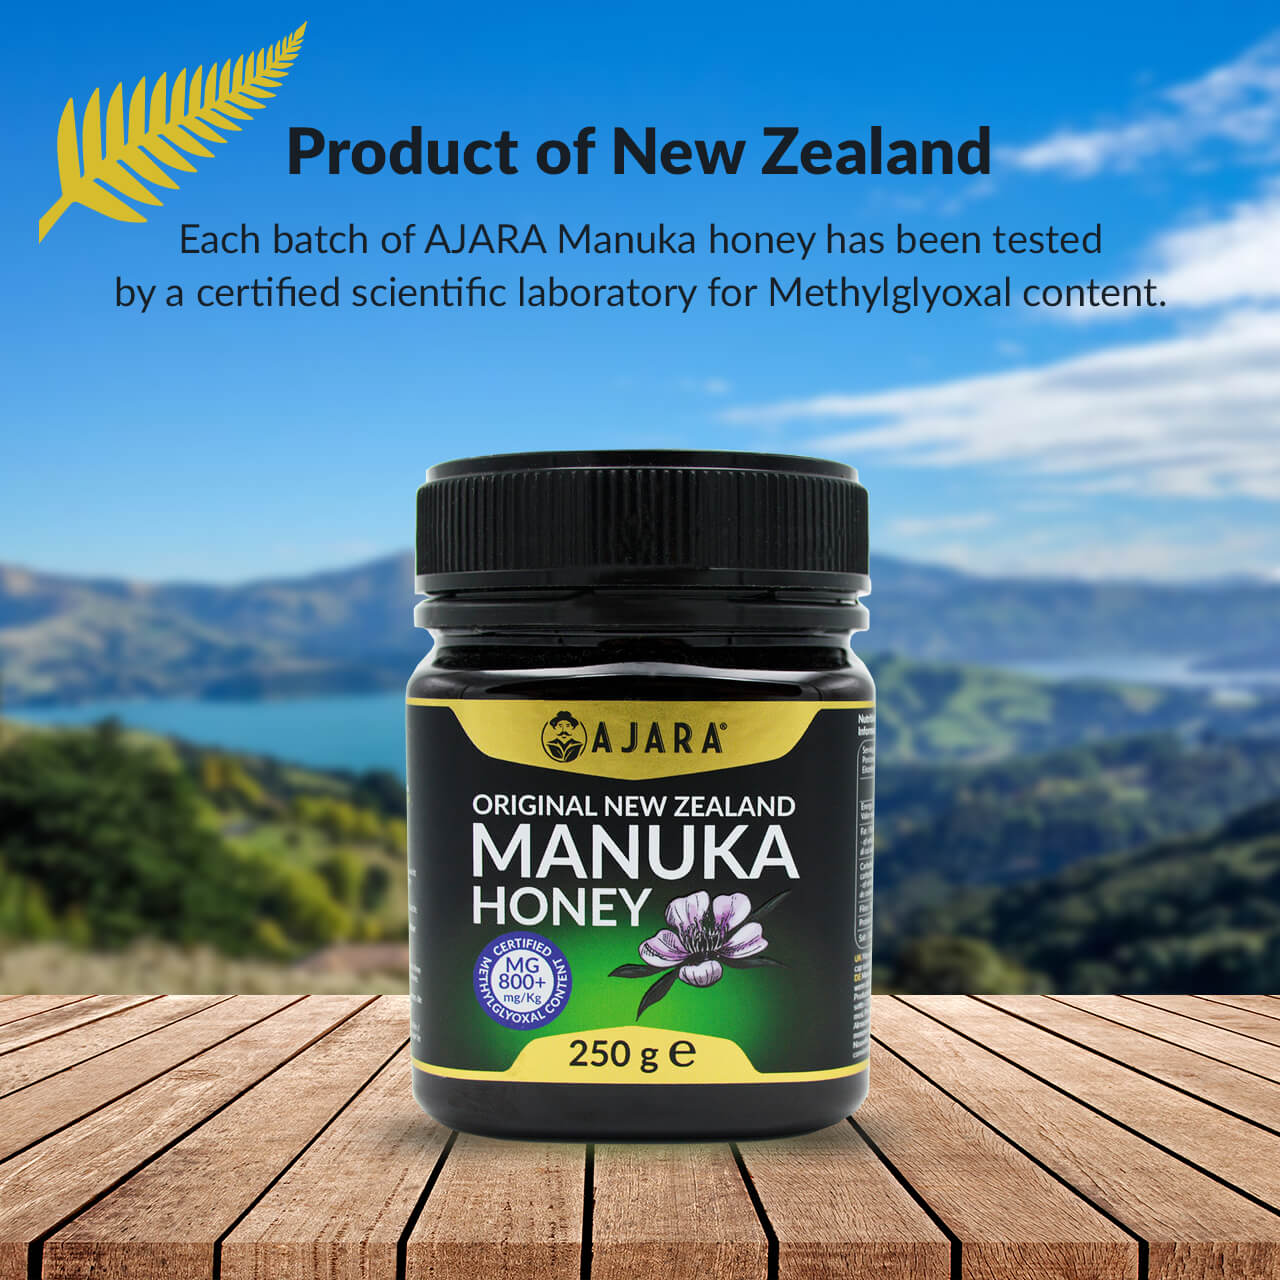 Certified Manuka Honey from New Zealand